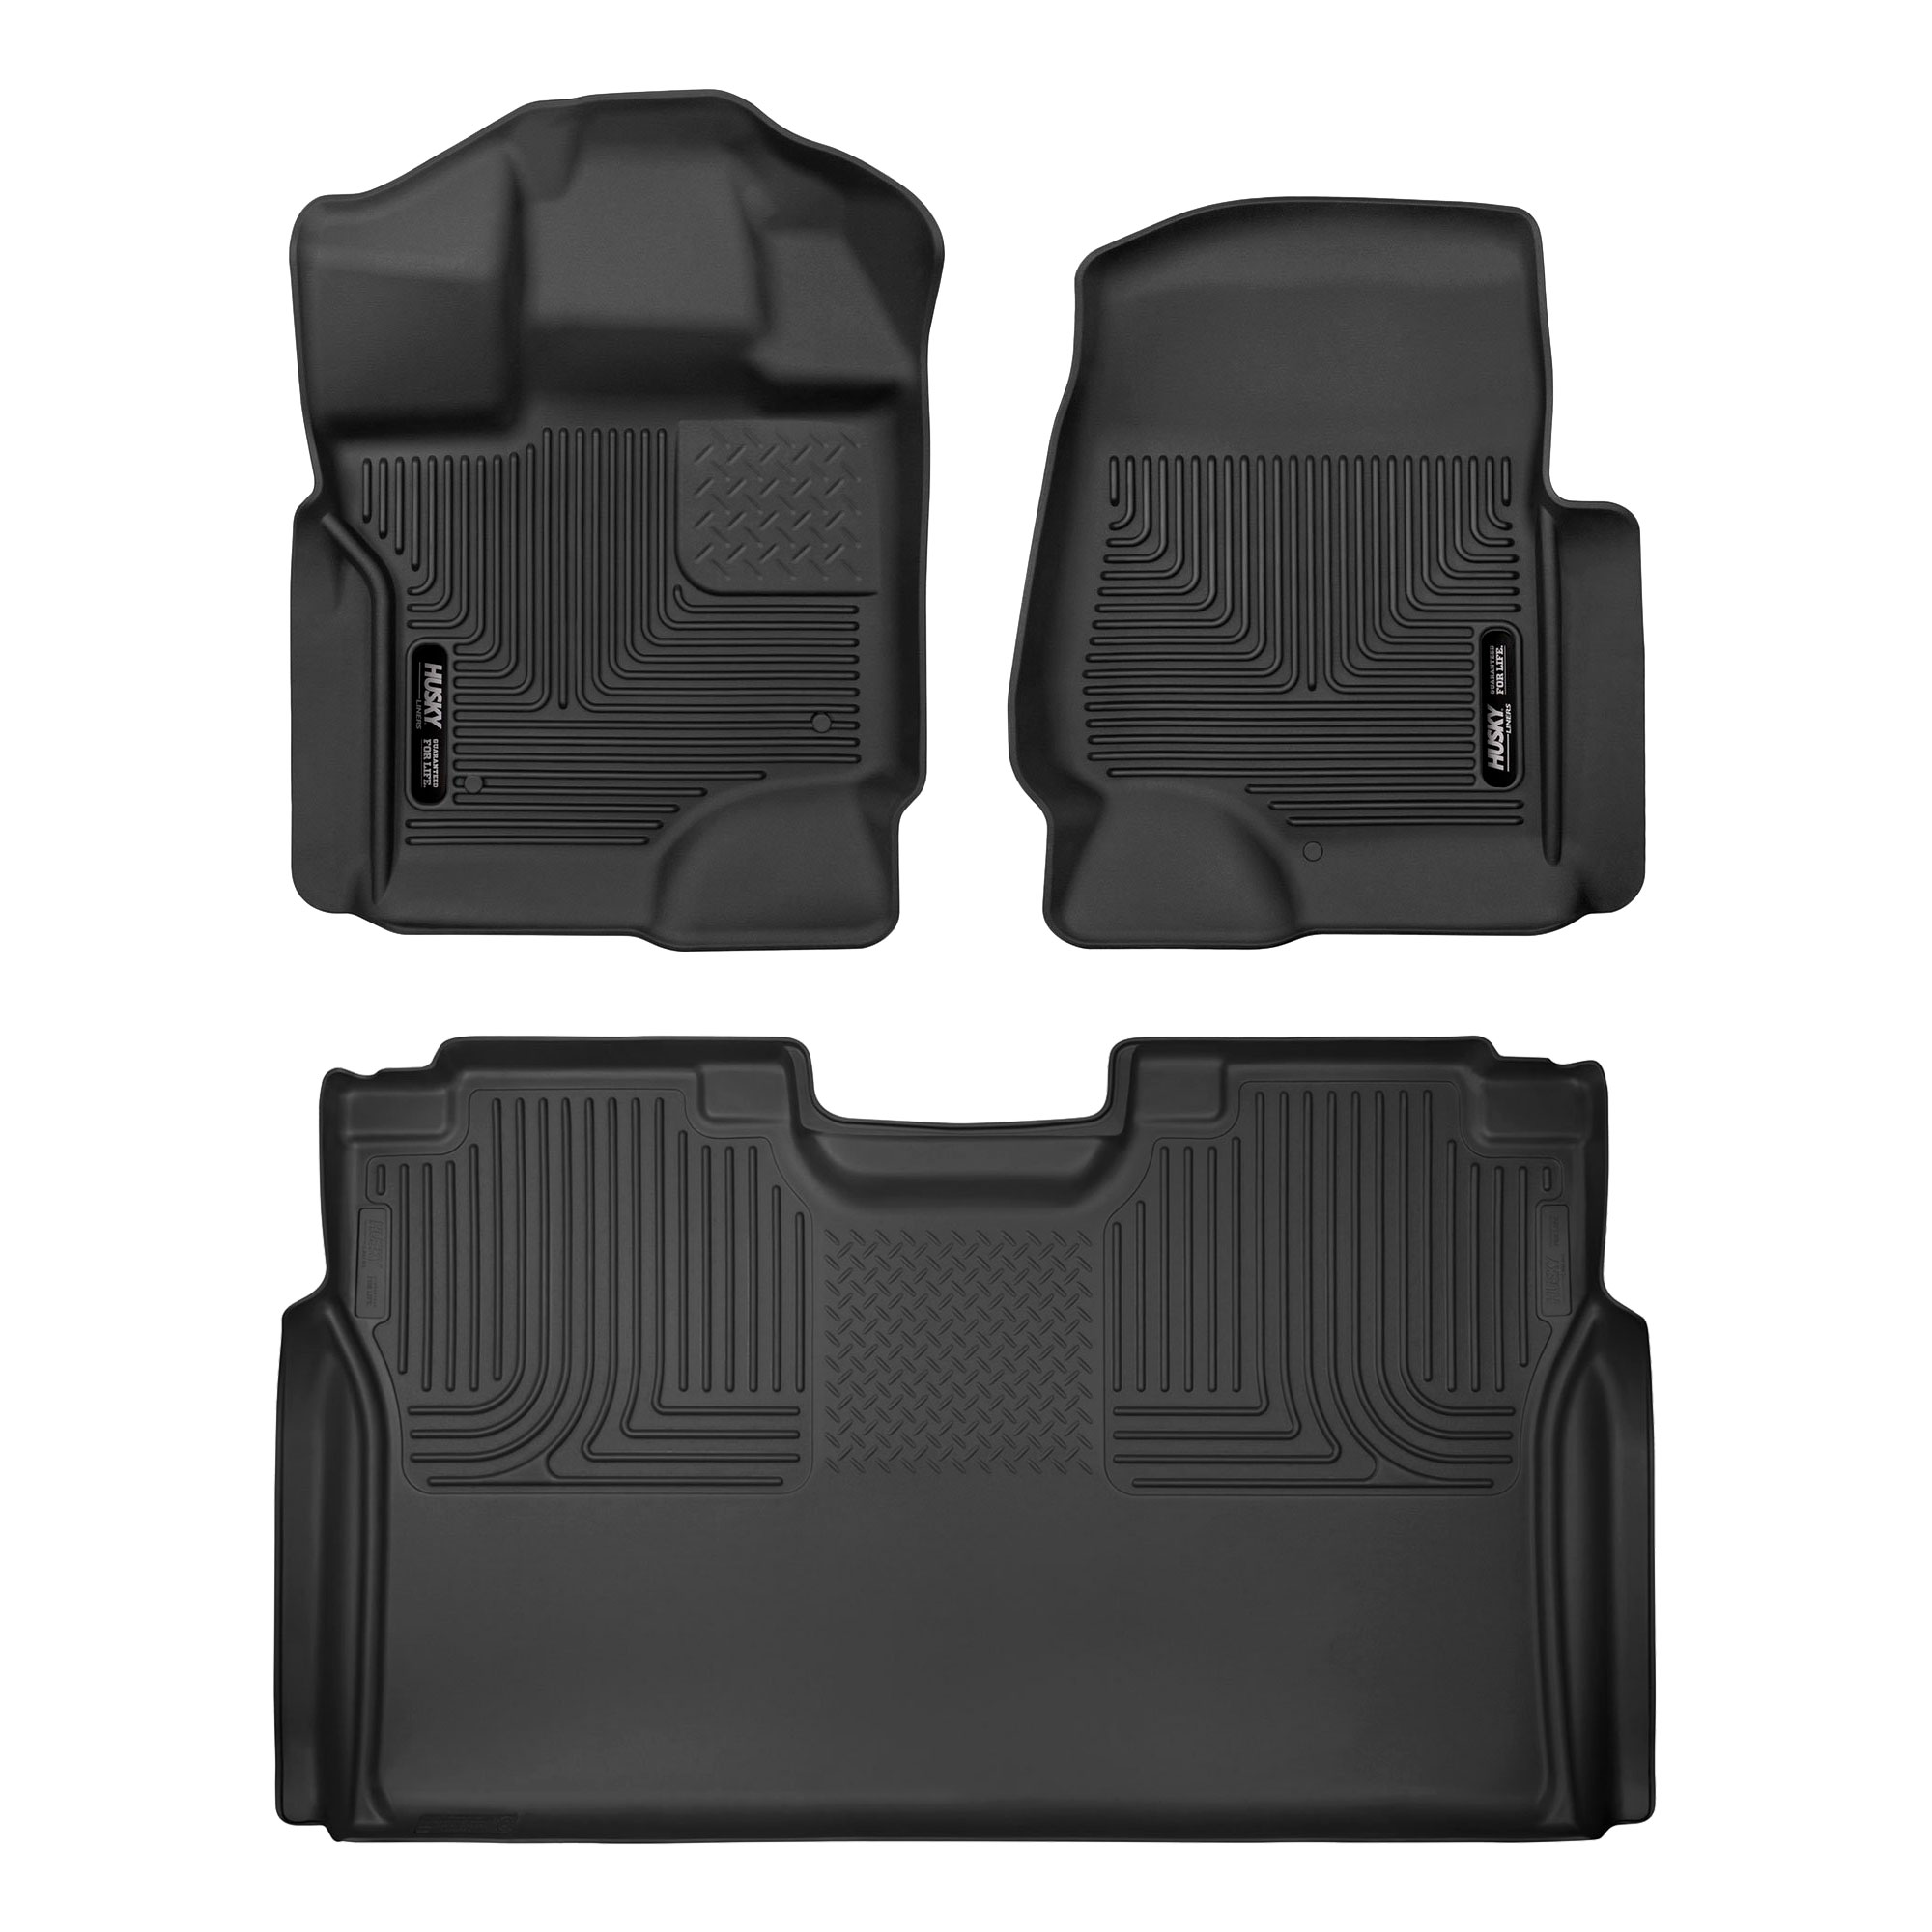 dodge attachment or click version trunk fit husky larger for floor liners forums side image right weathertech name digital challenger forum views